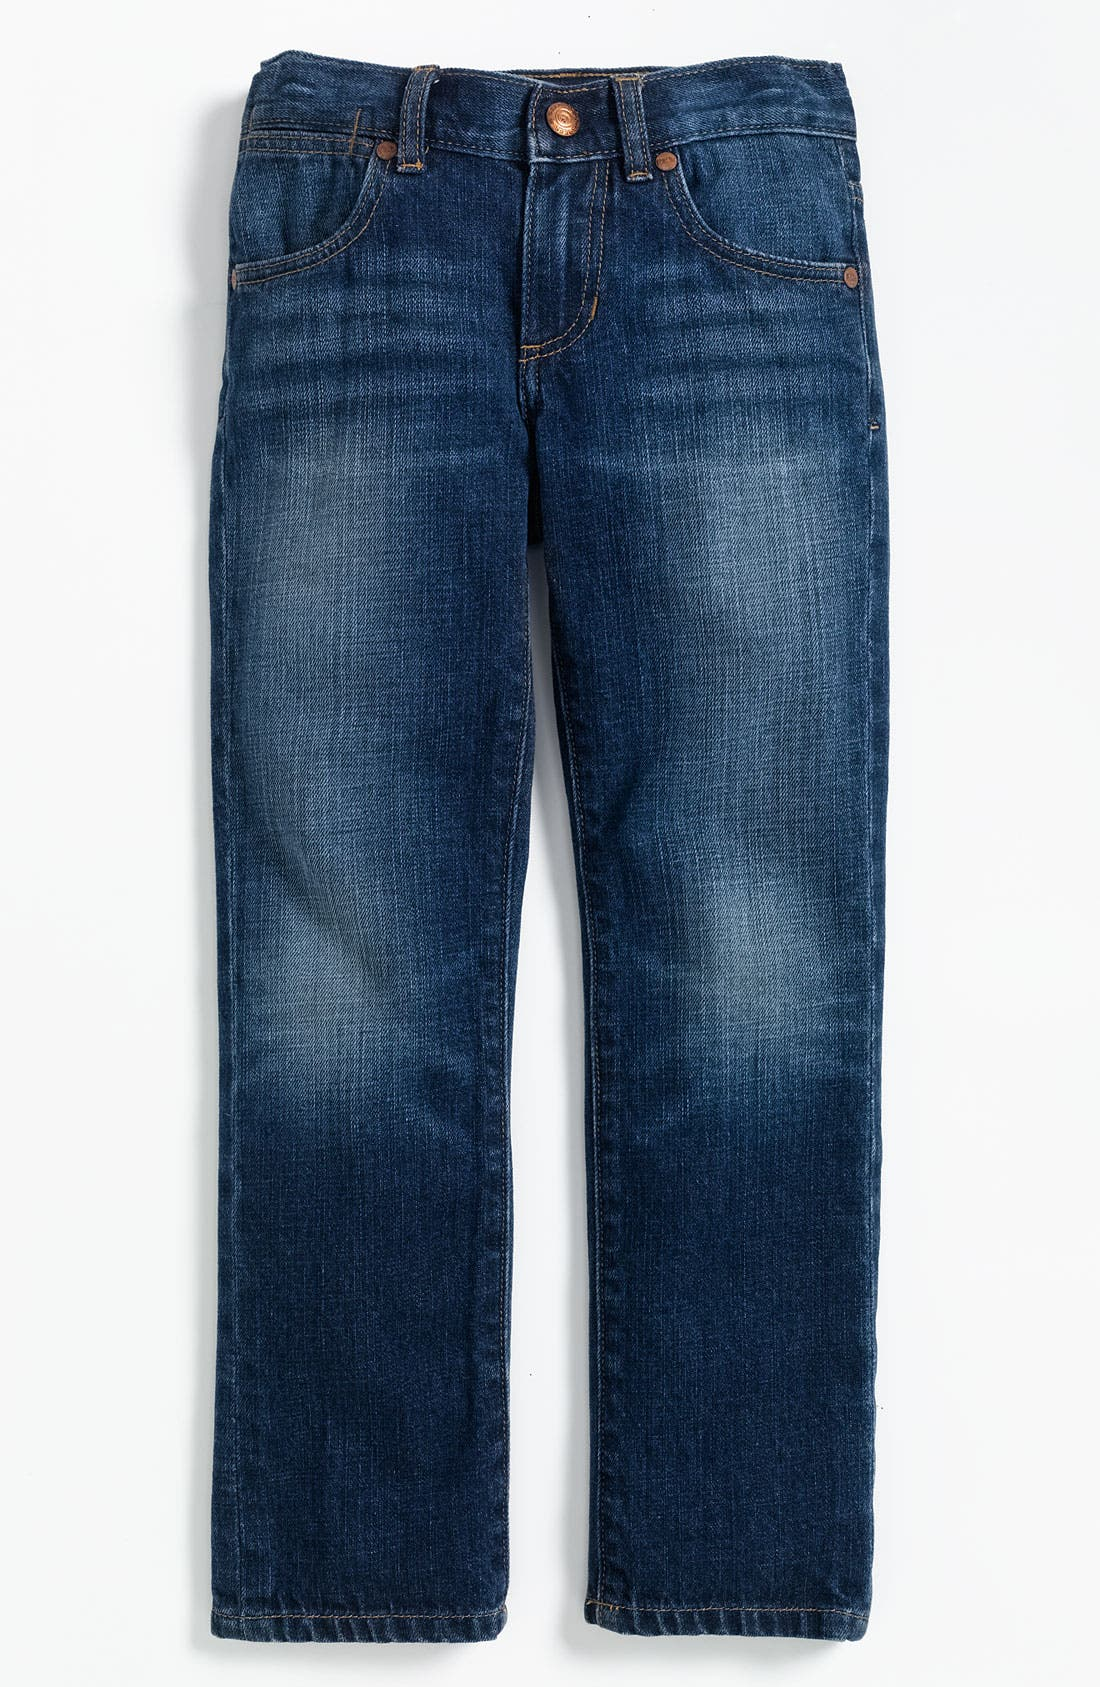 Alternate Image 2  - Peek 'Ellis' Jeans (Toddler, Little Boys & Big Boys)